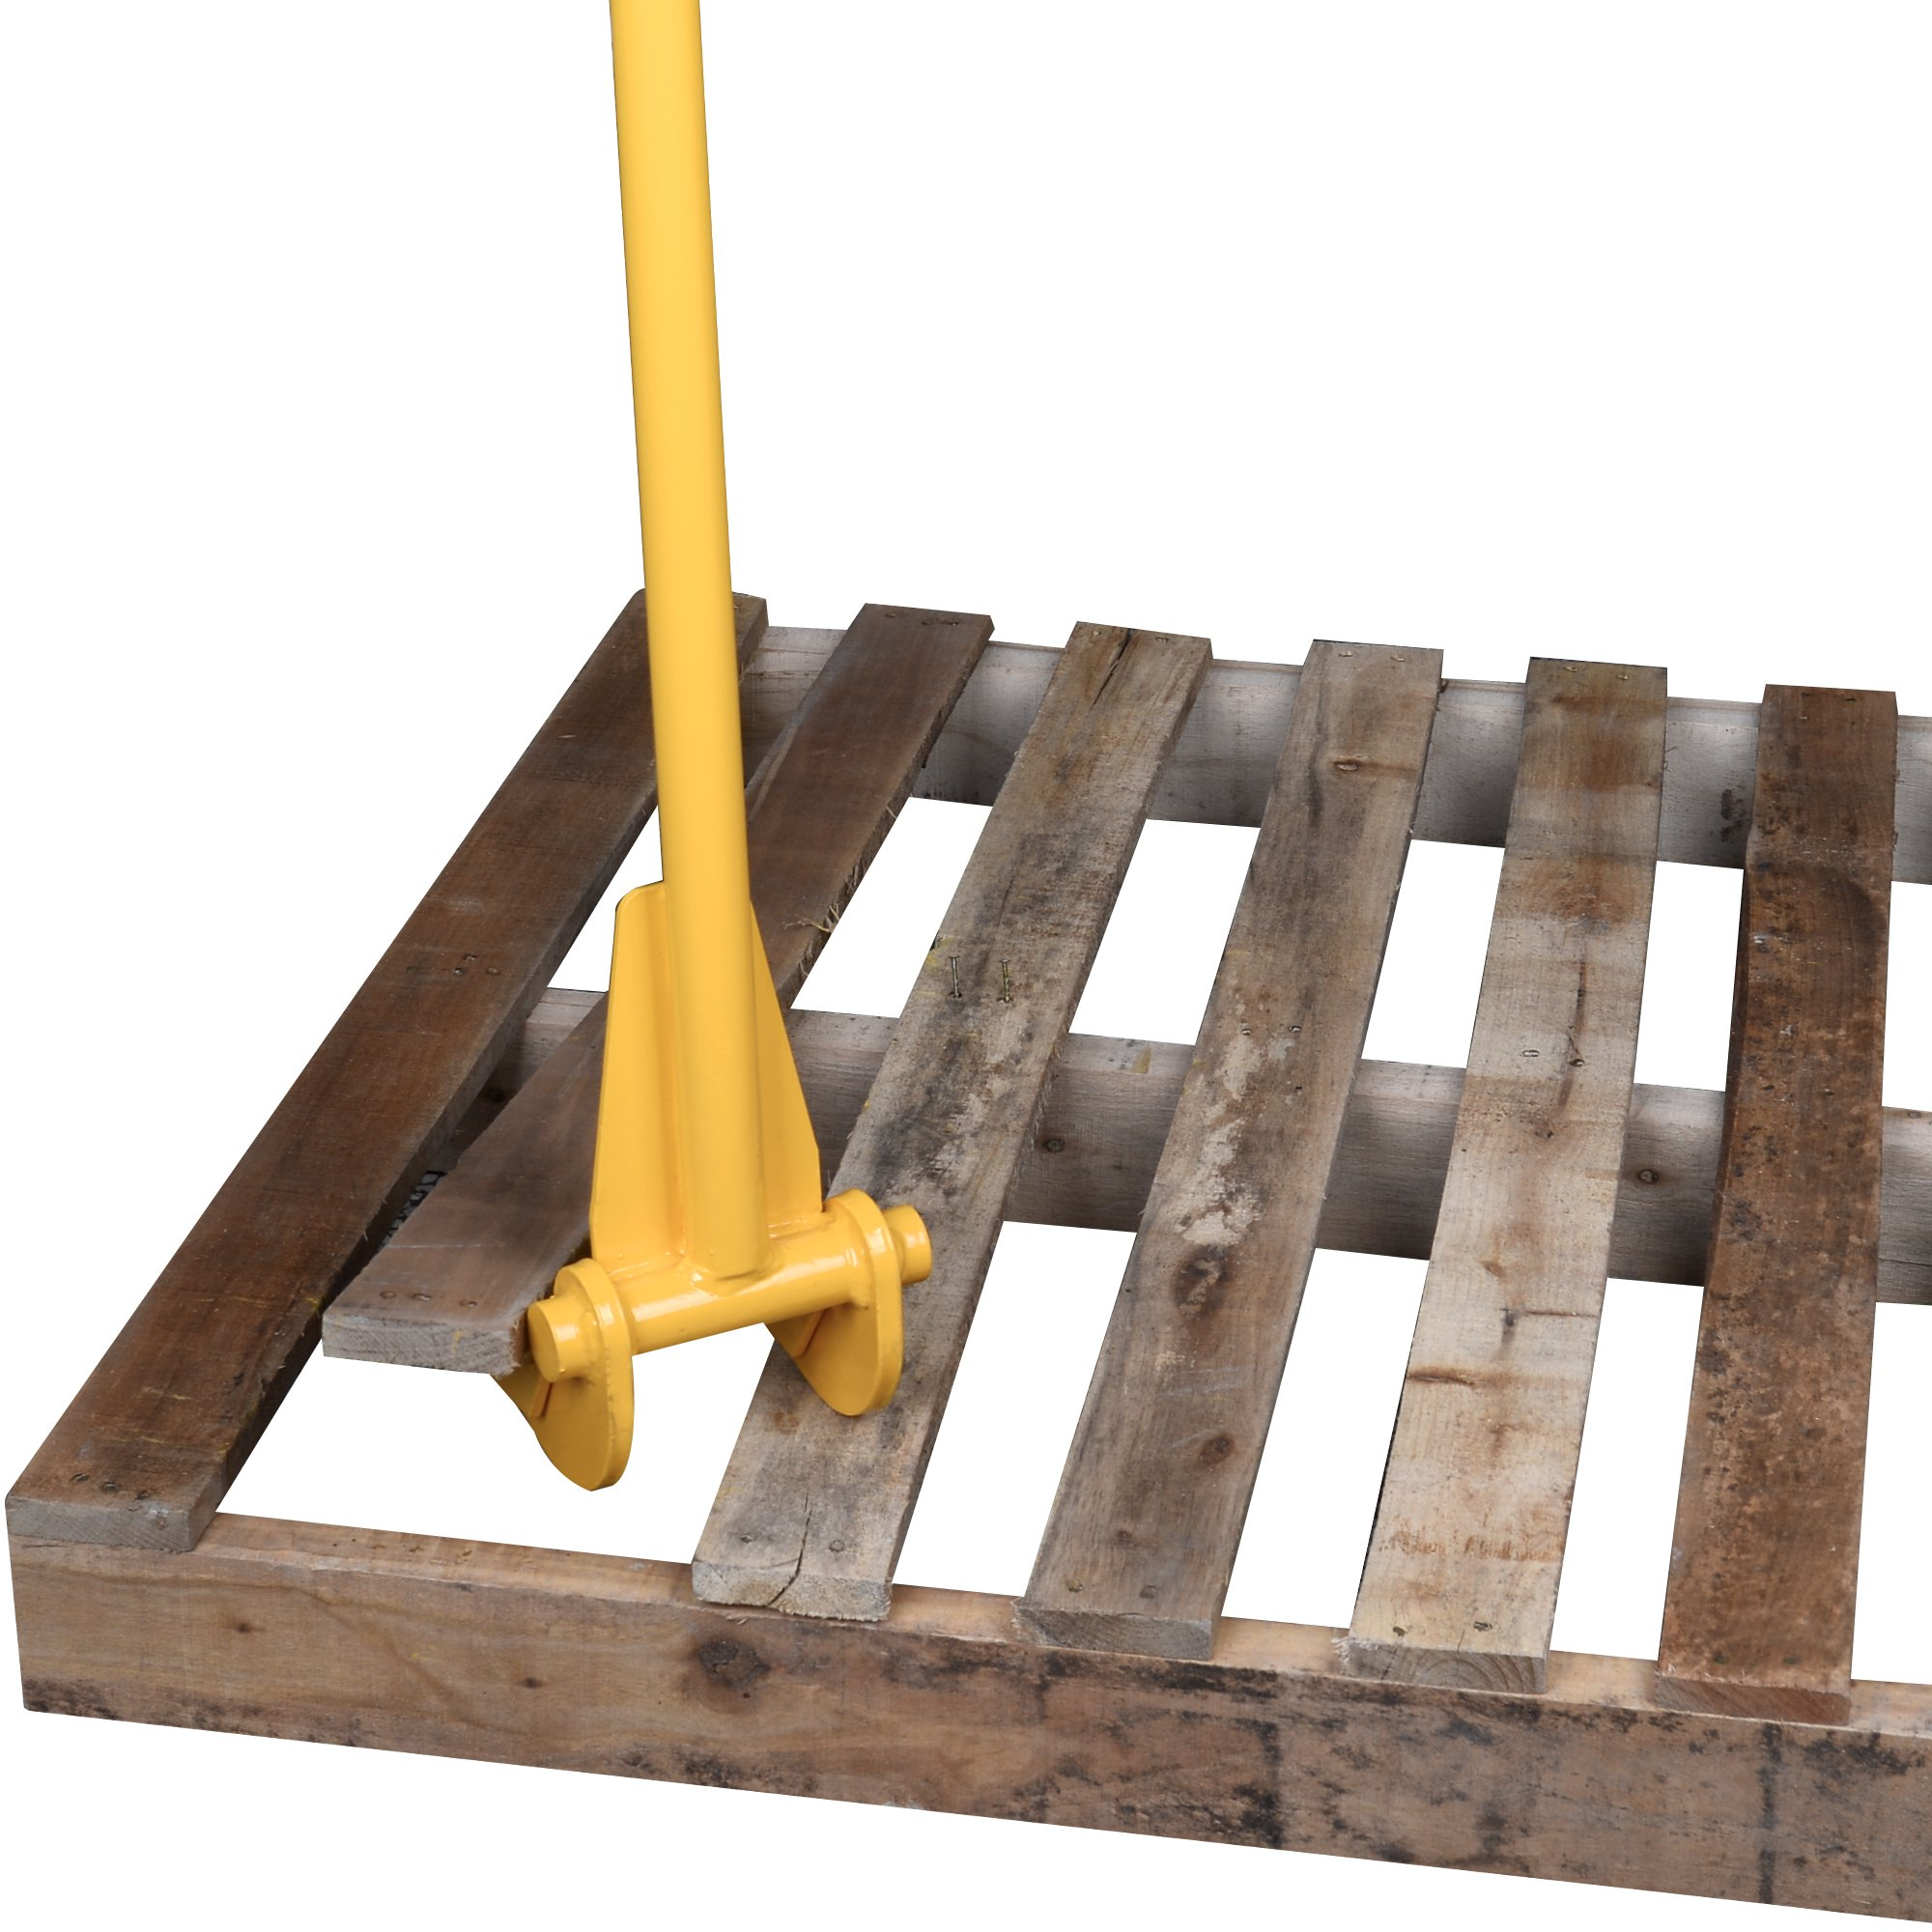 TIME SAVER - Pallet Buster Industrial Pry Bar For Easy Wood Pallet Destruction and Dismantler Premium Global Wood Breaker For Logistics Shippers Warehouses Anti Slip Grip Handles 41'' BL by 12Vmonster (Image #7)